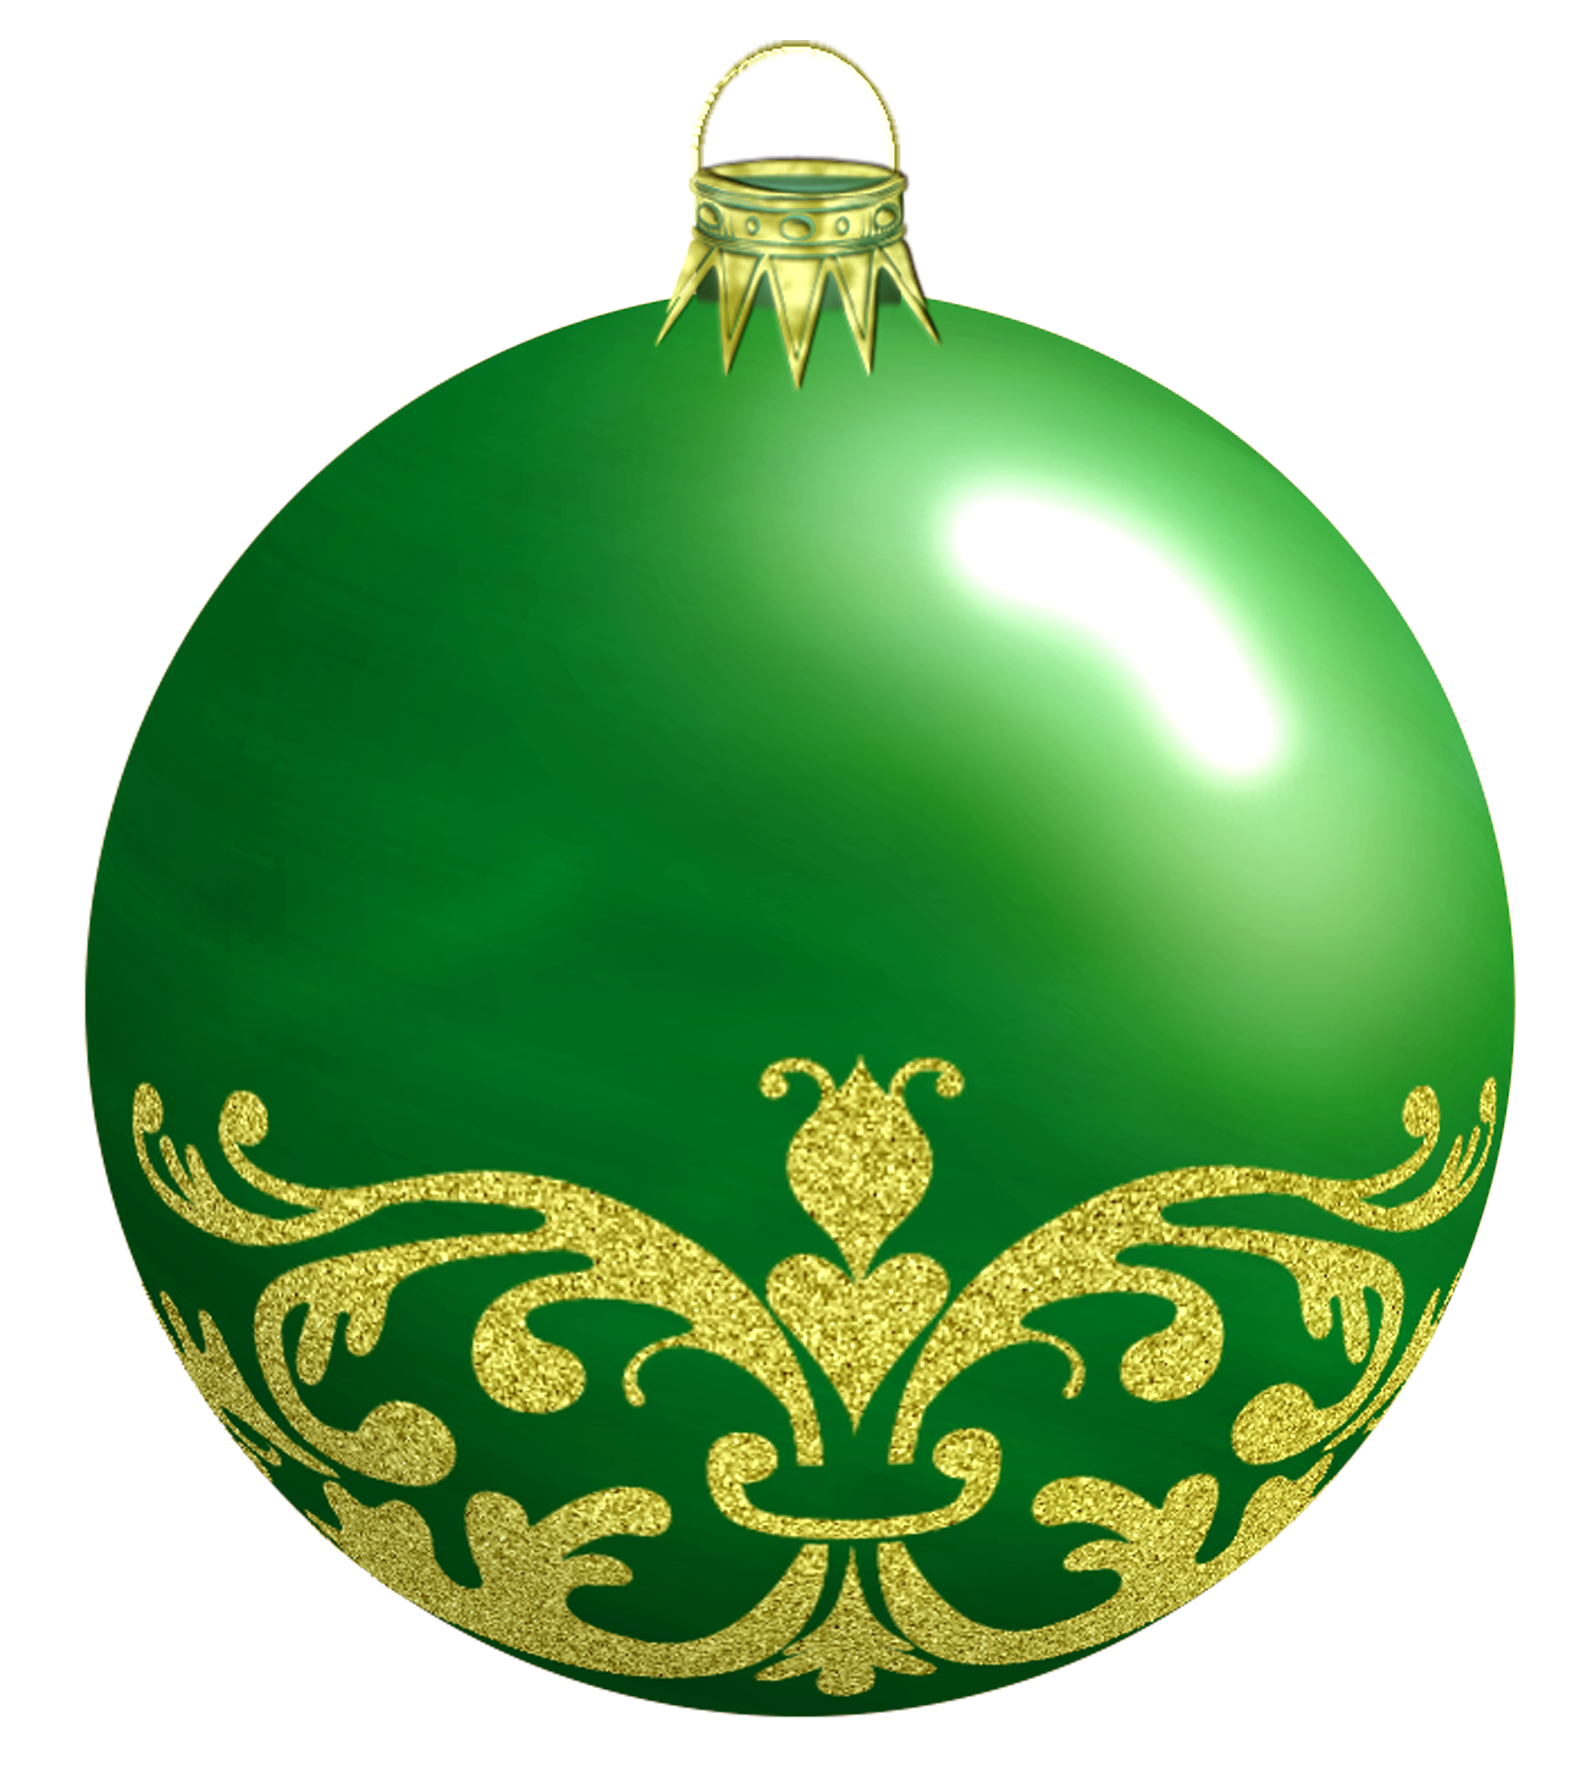 Christmas Bauble PNG Image - PurePNG | Free transparent ...